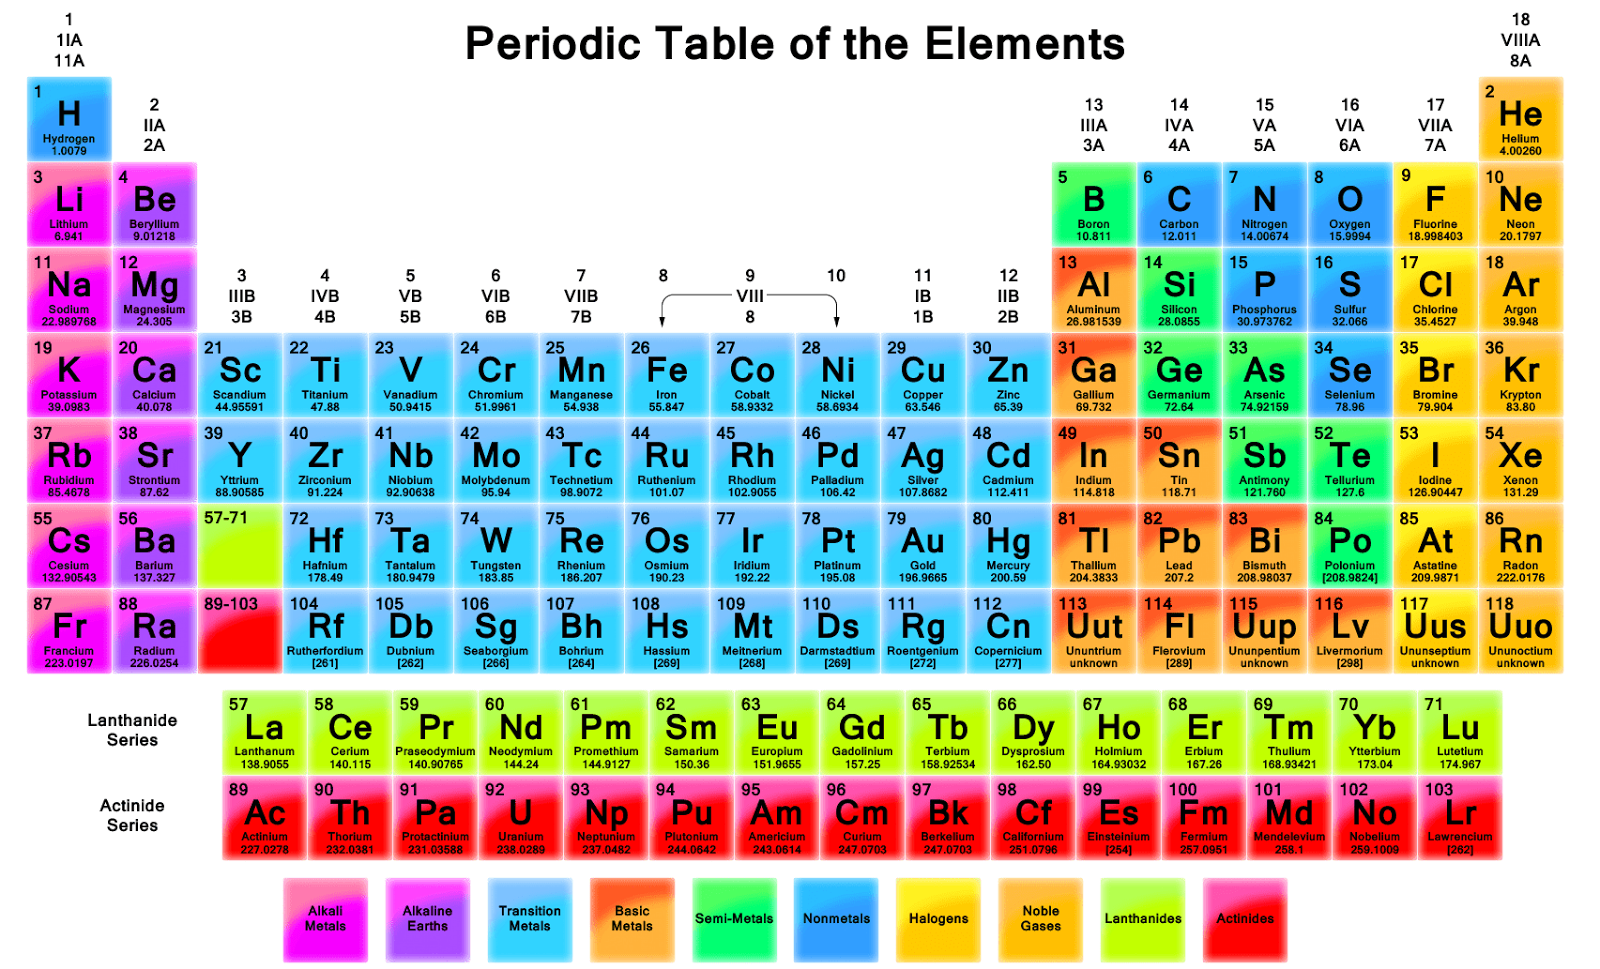 Periodic table mnemonics edu buzz the mnemonics are one of the easiest ways to learn something we can use mnemonics in chemistry to remember the periodic table reactivity series etc urtaz Images